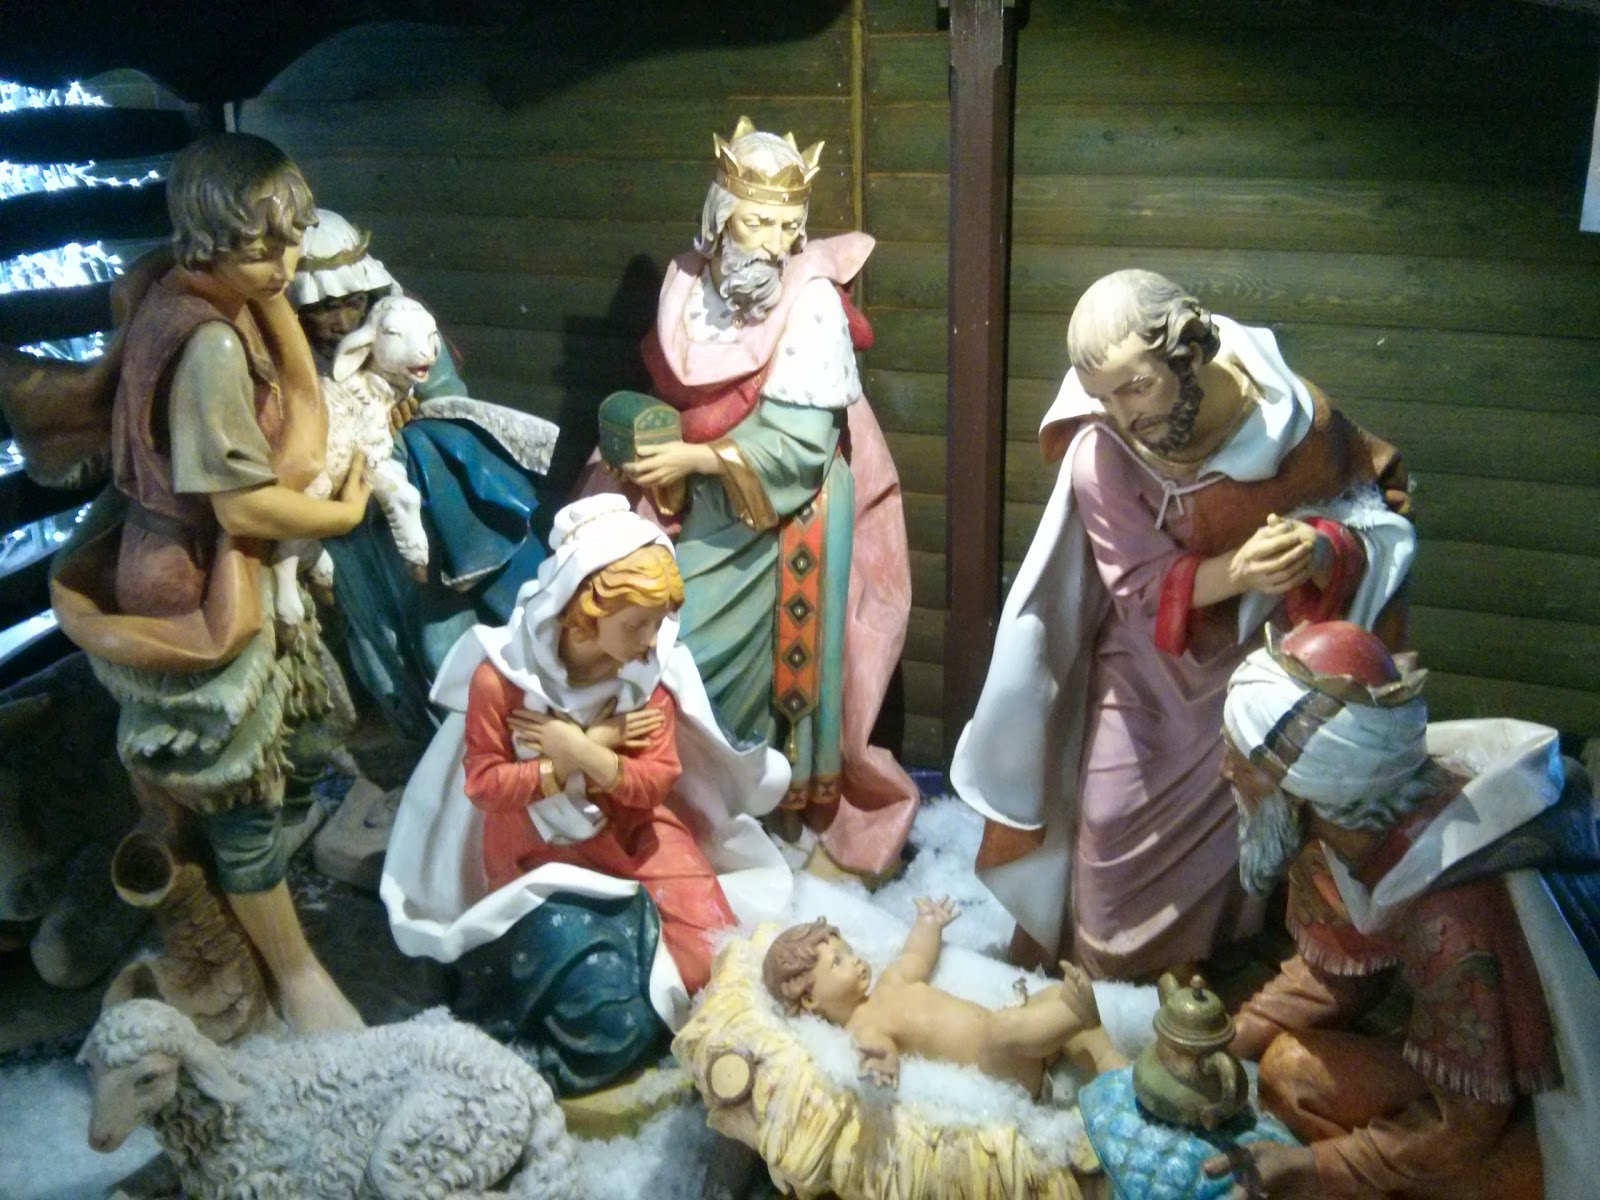 The Nativity Scene from the Shopping Centre Christmas Display